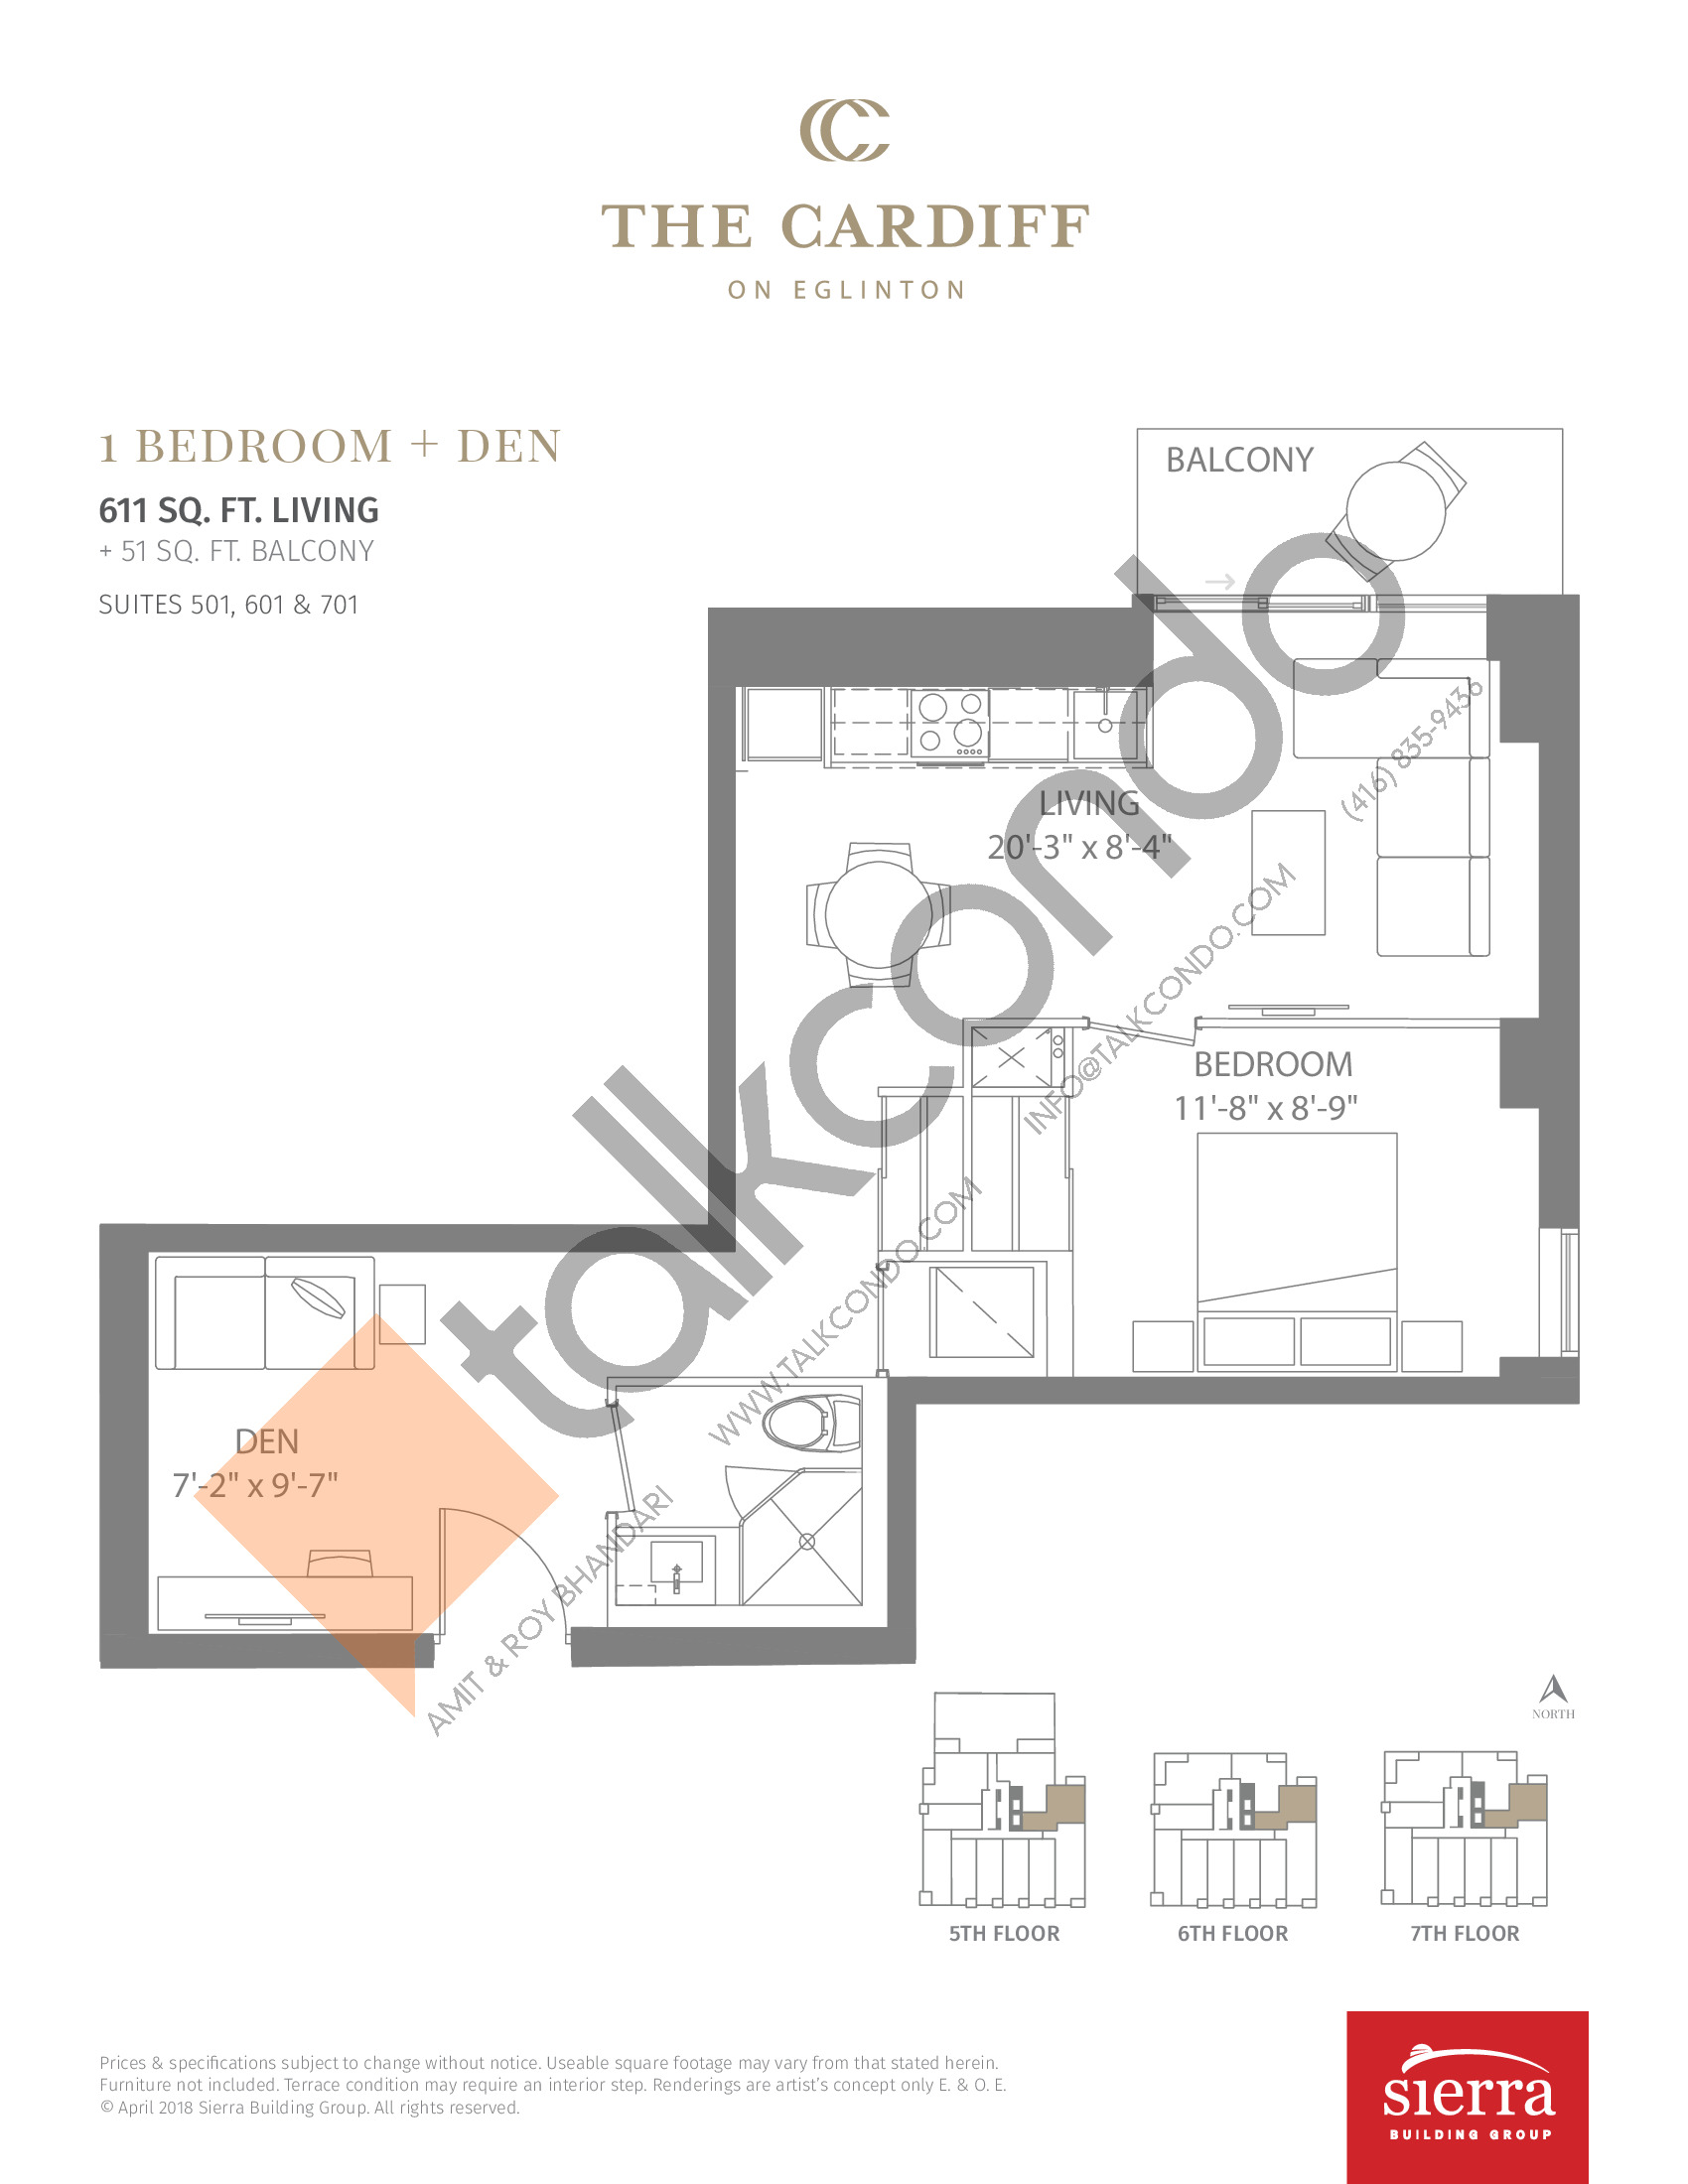 Suites 501, 601 & 701 Floor Plan at The Cardiff Condos on Eglinton - 611 sq.ft